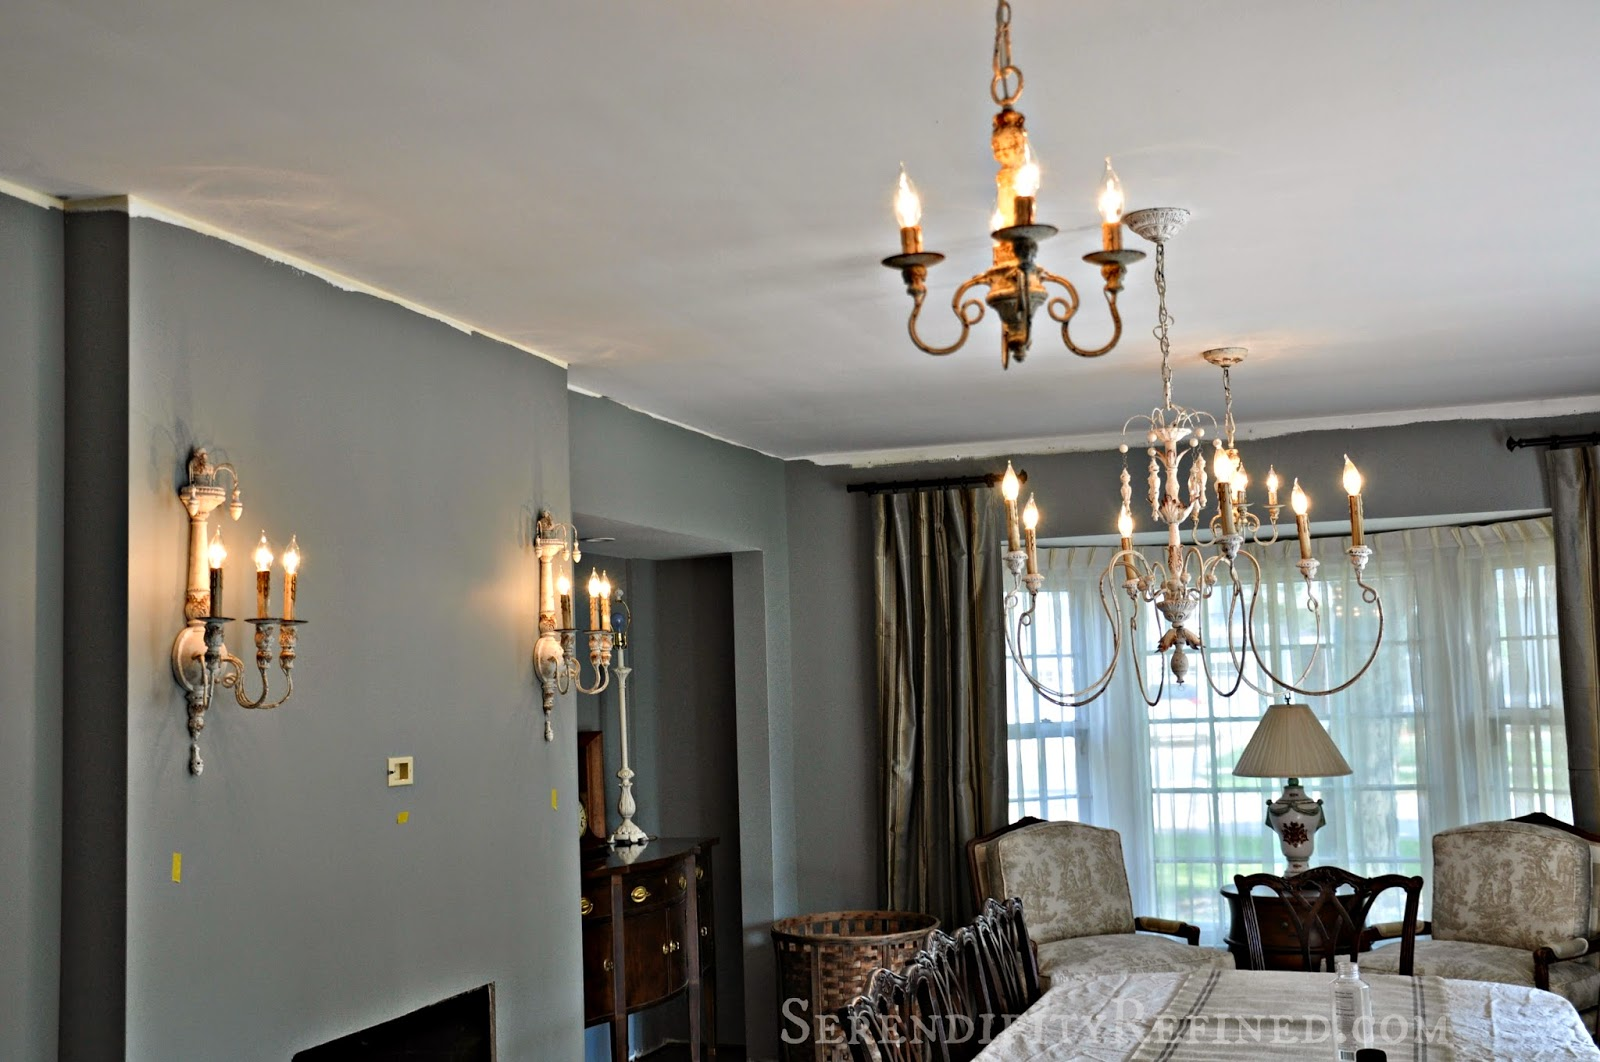 Serendipity Refined Blog French Country Light Fixtures For